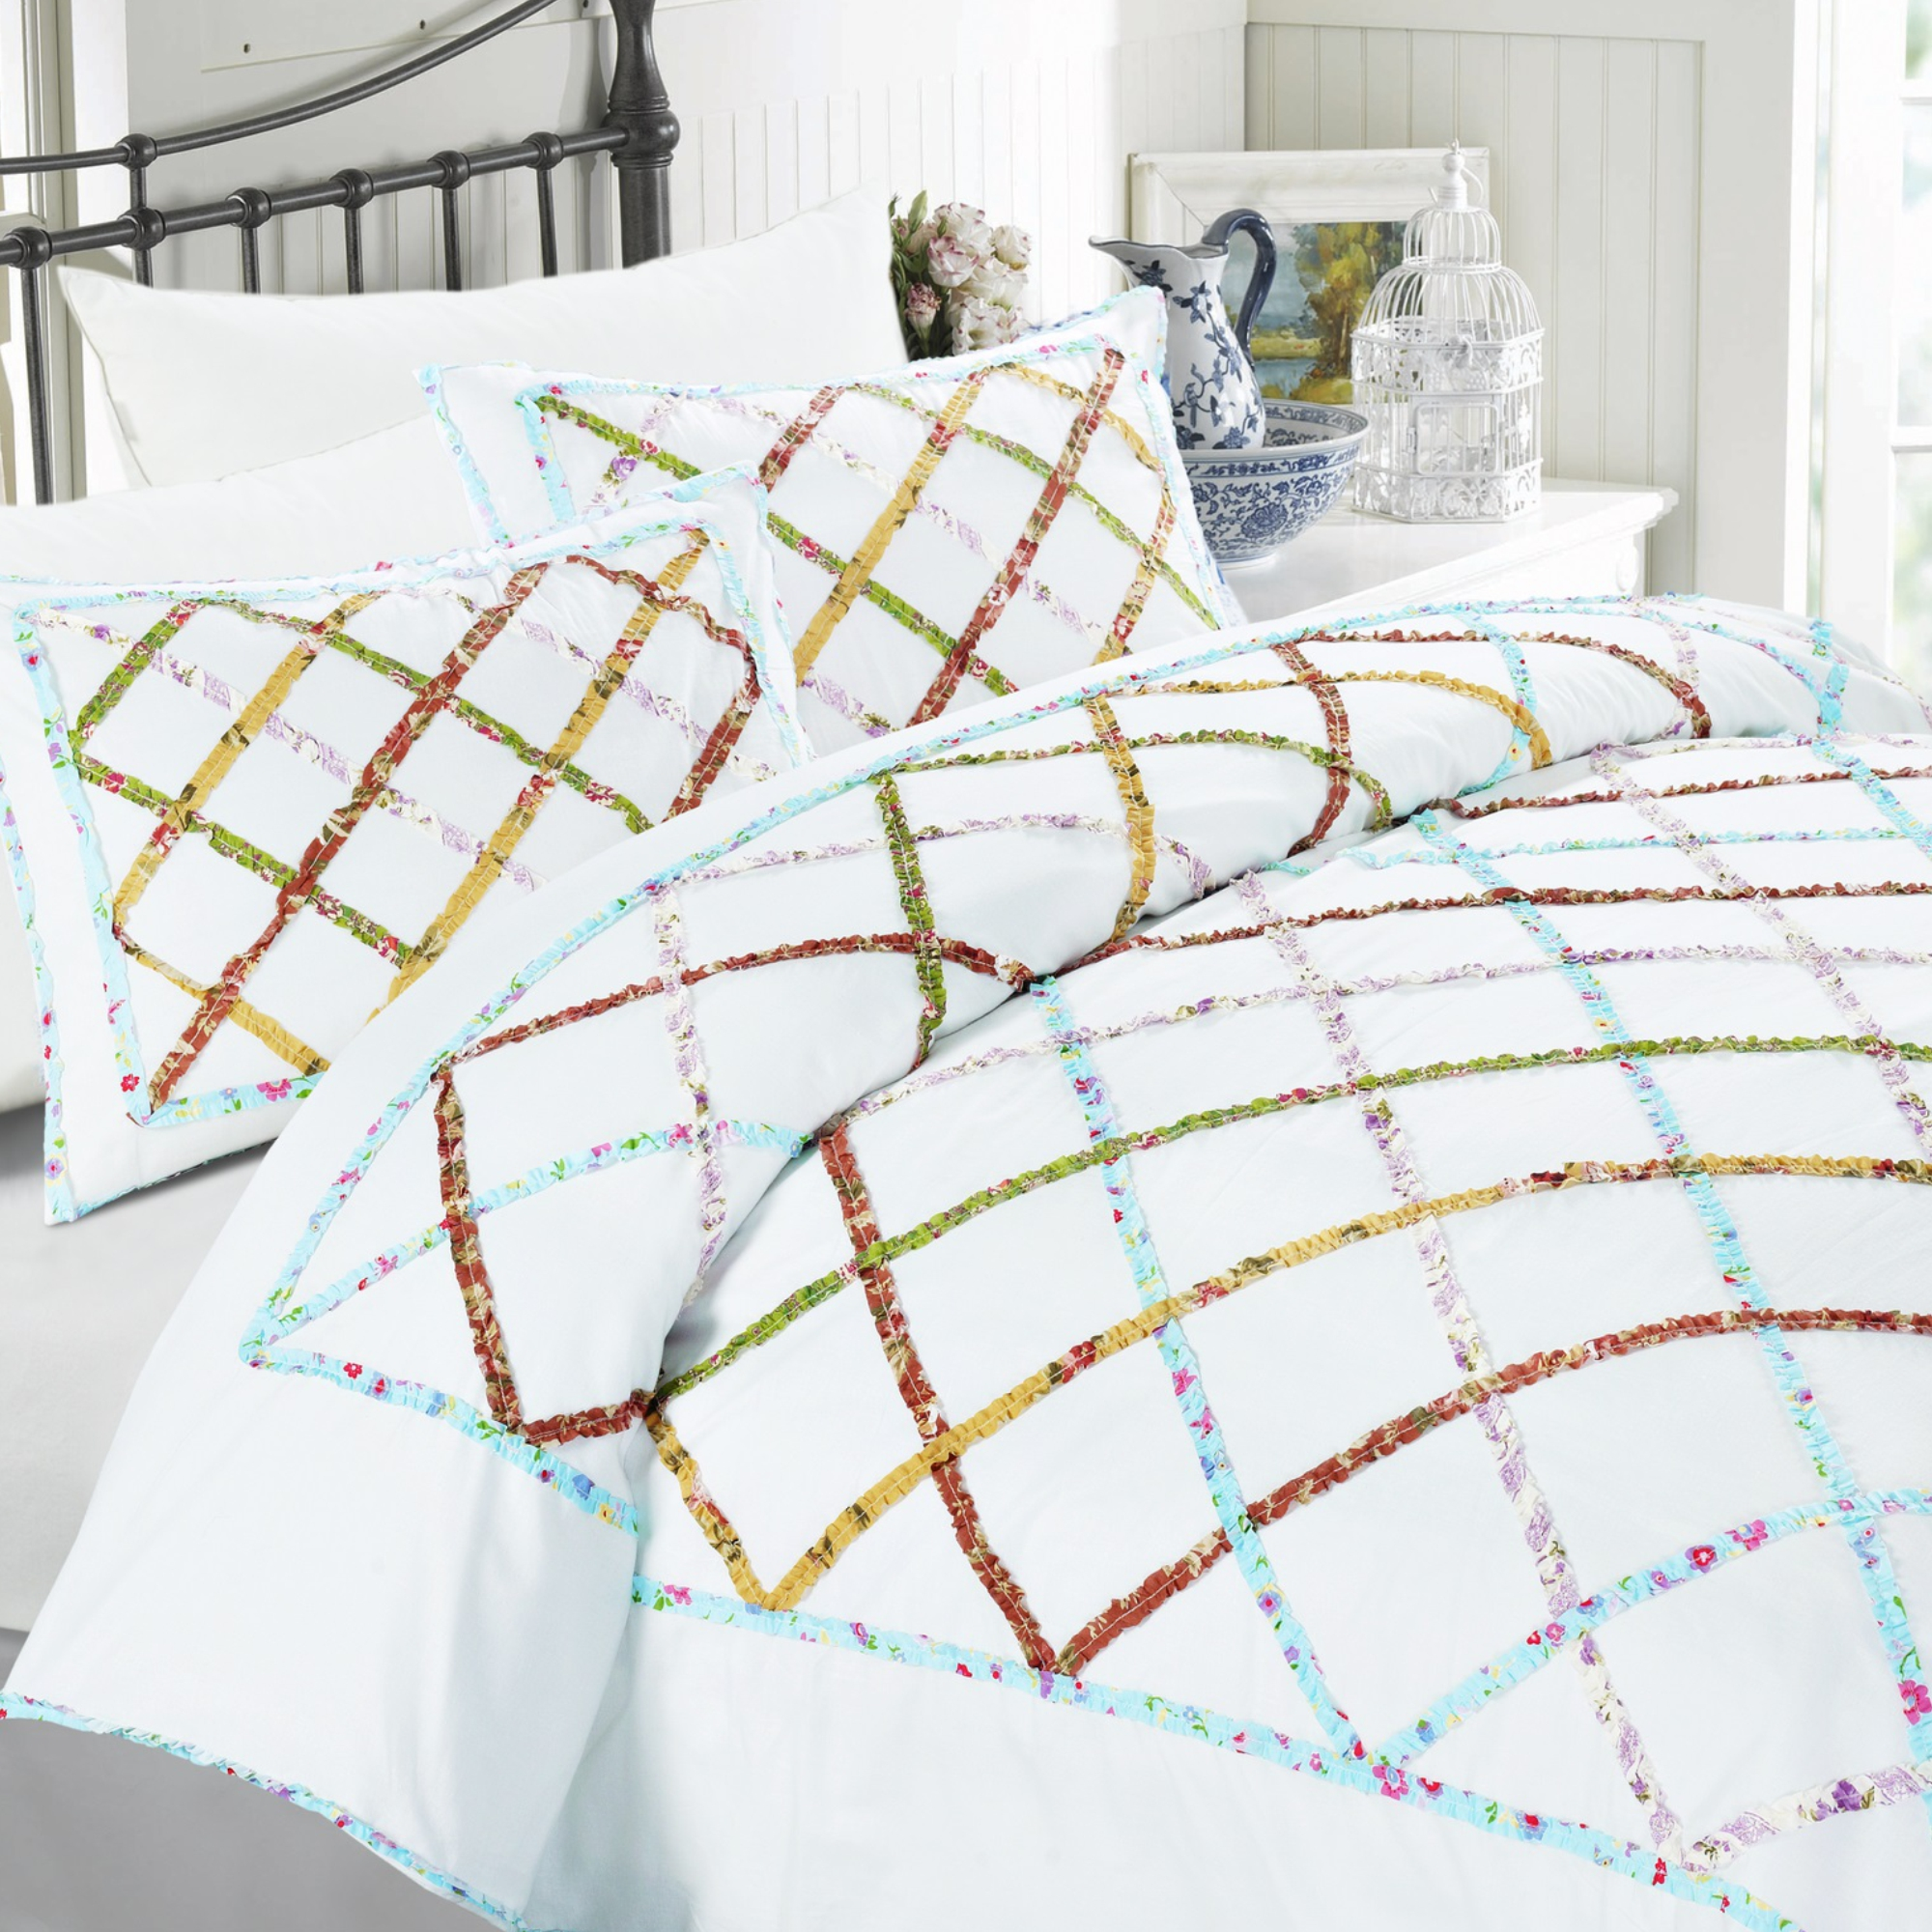 Kaleidoscope Ruffle Duvet Cover Set White Full/Queen